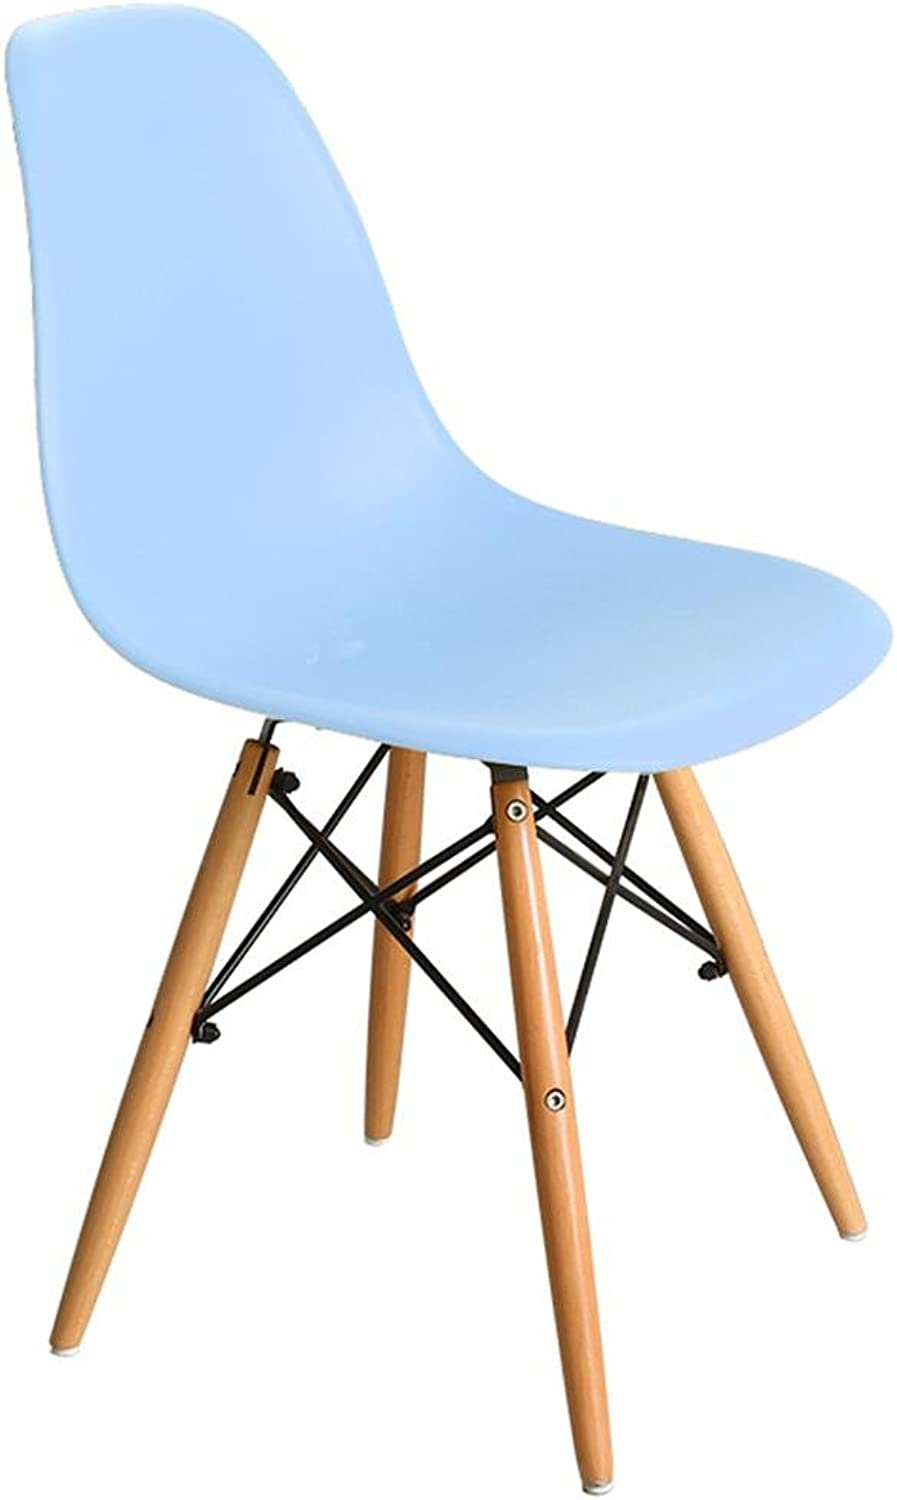 HETAO Fashion Wood Computer Chair Leisure Chair Backrest Chair Book Tables and Chairs Dining Chair Household Study 424043cm, 4